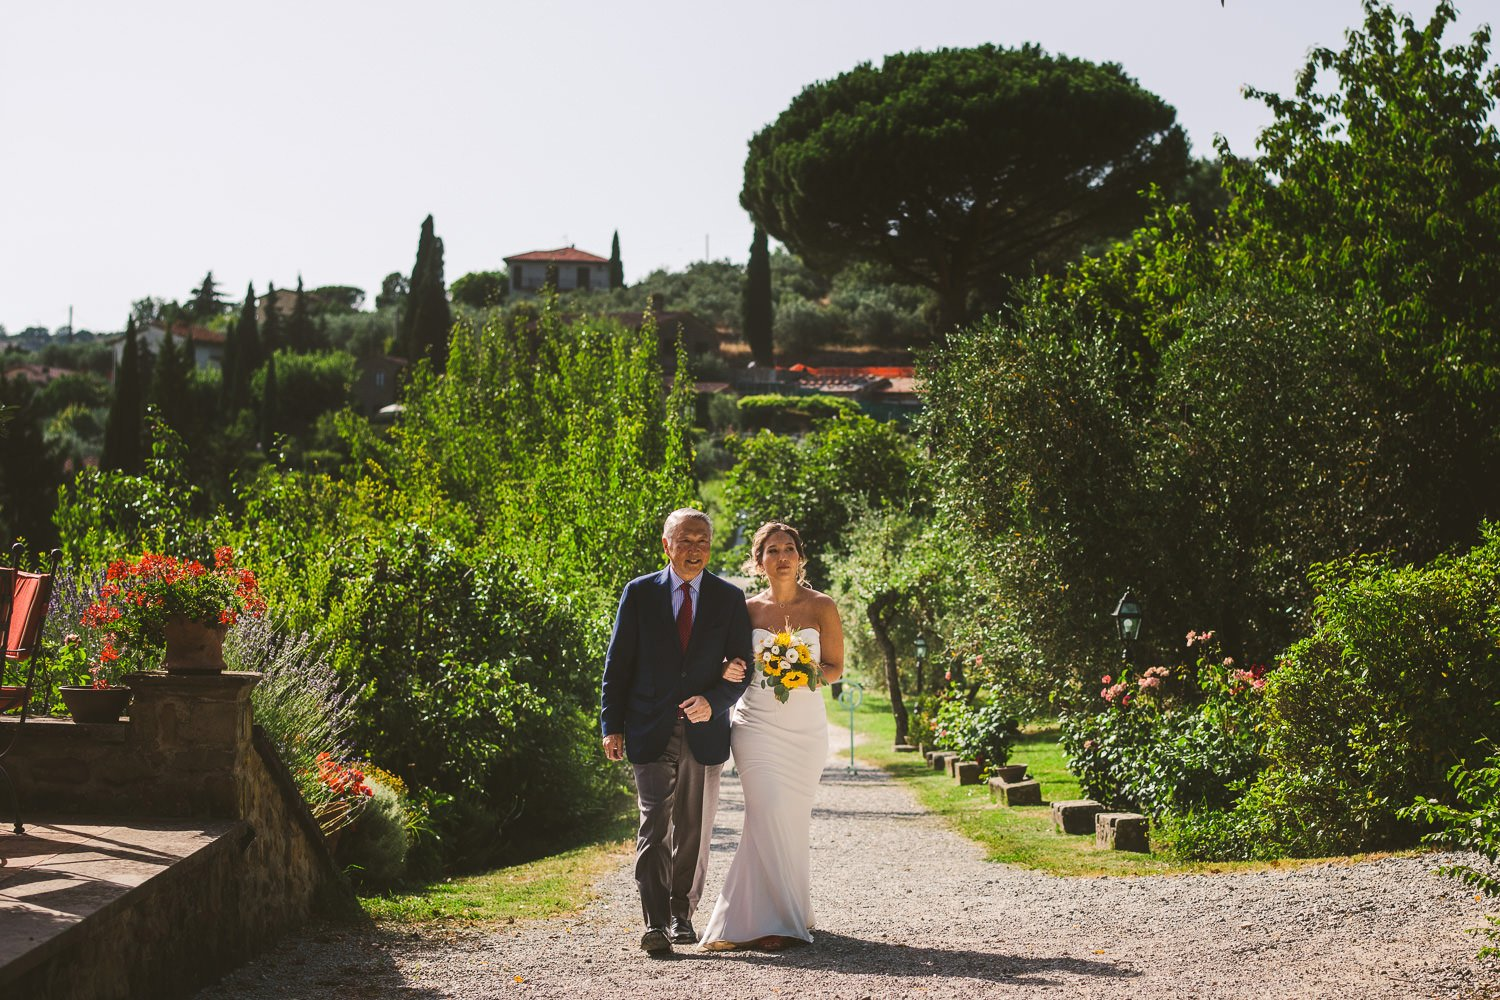 Wedding At Il Falconiere Cortona, A+M Wedding At Relais Il Falconiere Cortona, Federico Pannacci, Federico Pannacci